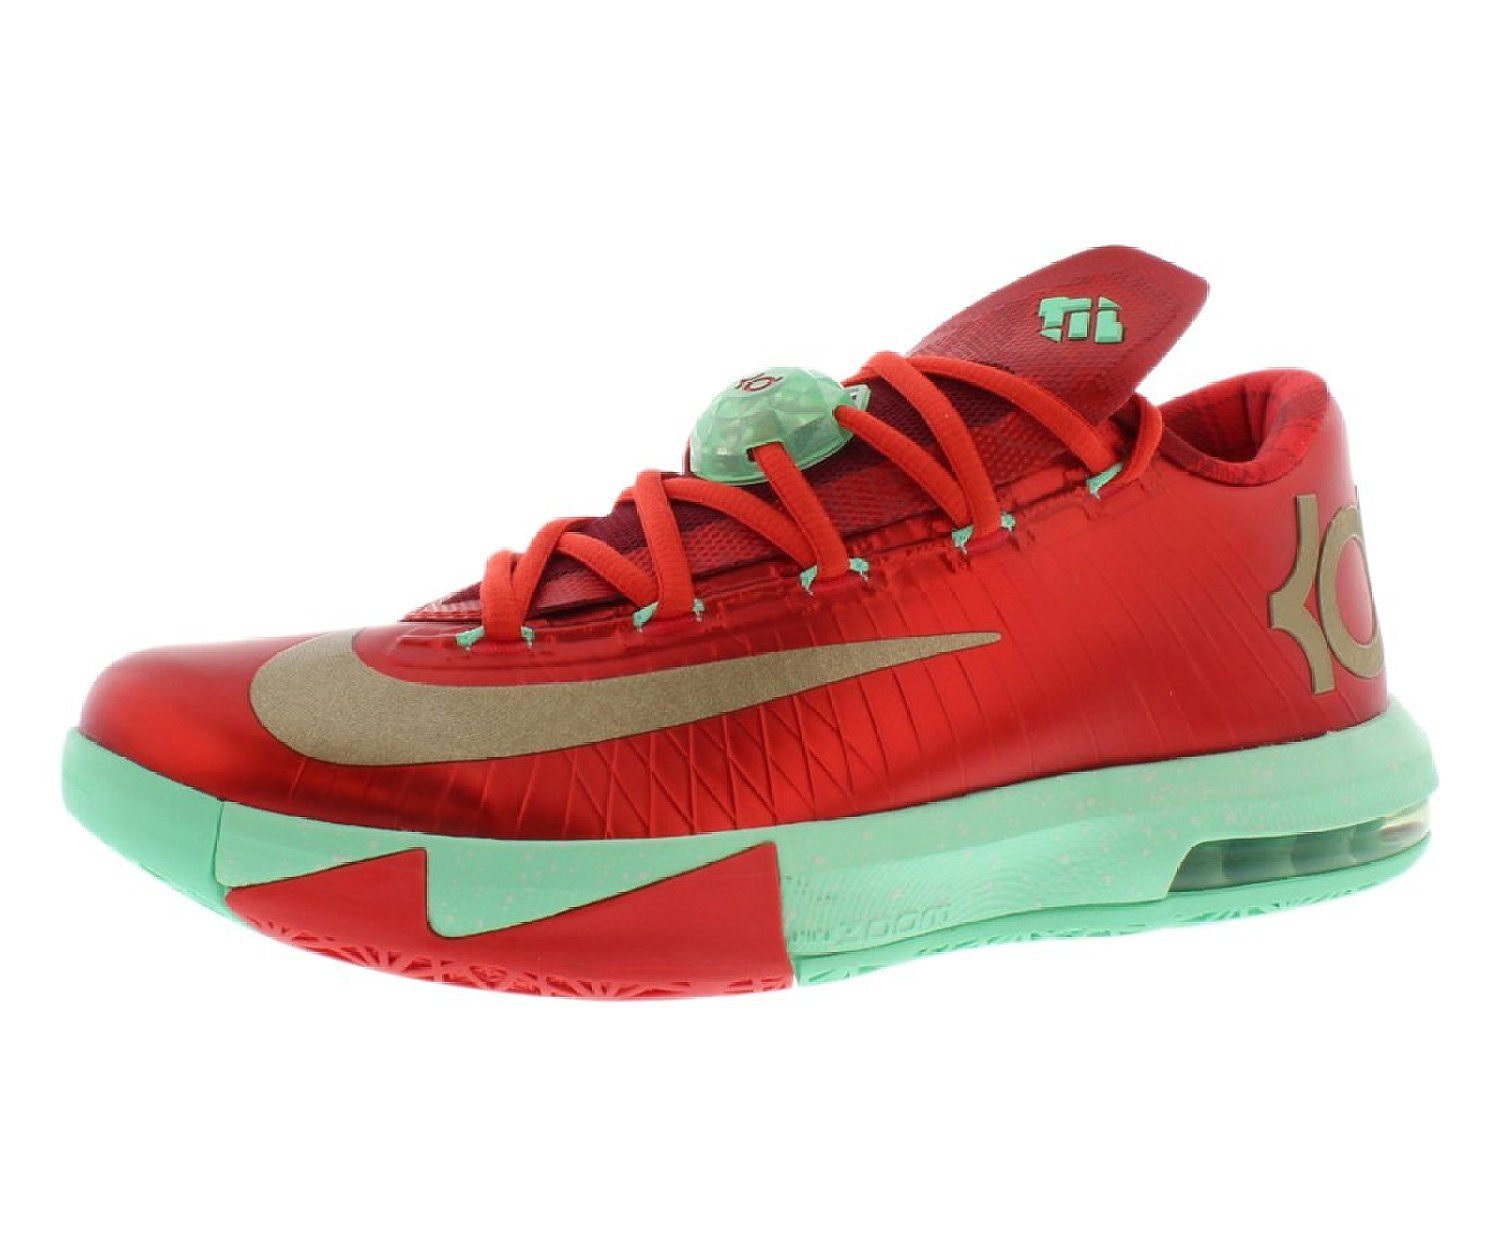 Cheap Kd Nike Shoes, find Kd Nike Shoes deals on line at Alibaba.com